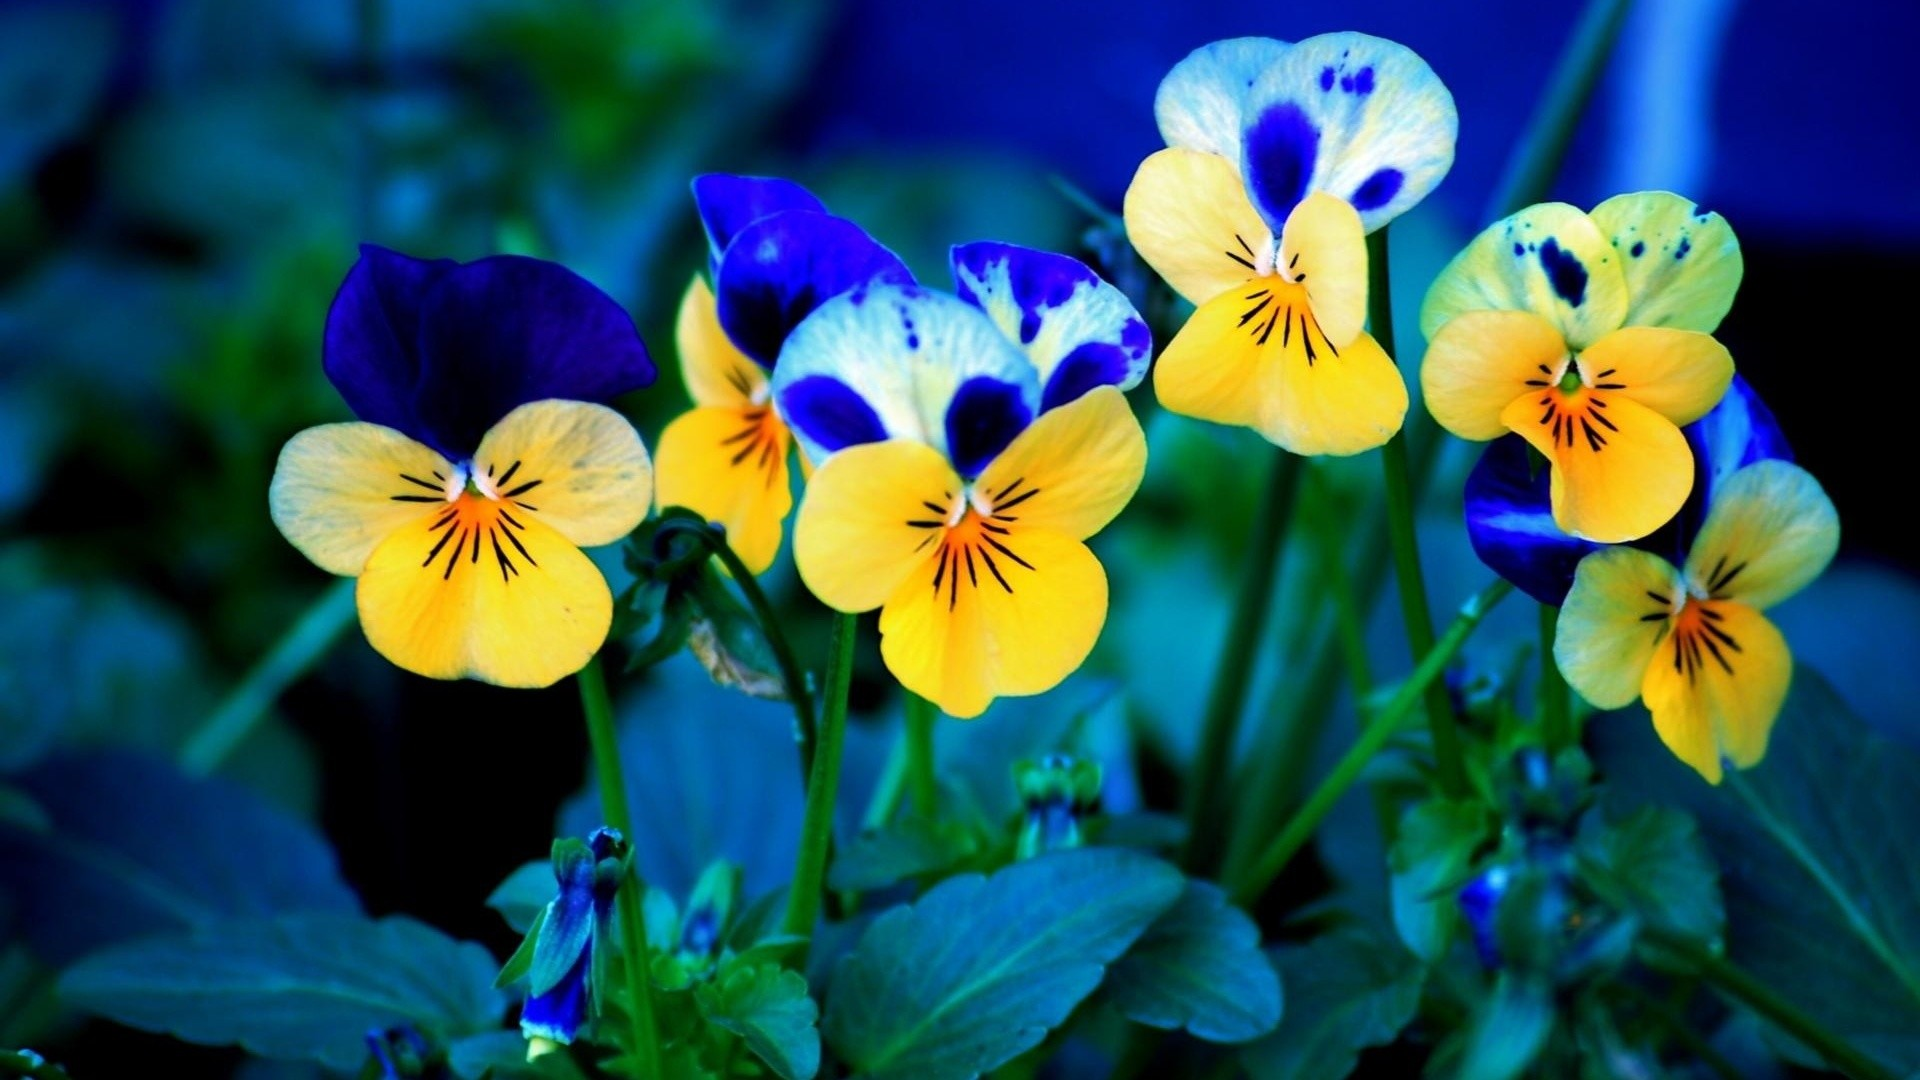 1920x1080 7. spring-flowers-wallpaper7-600x338